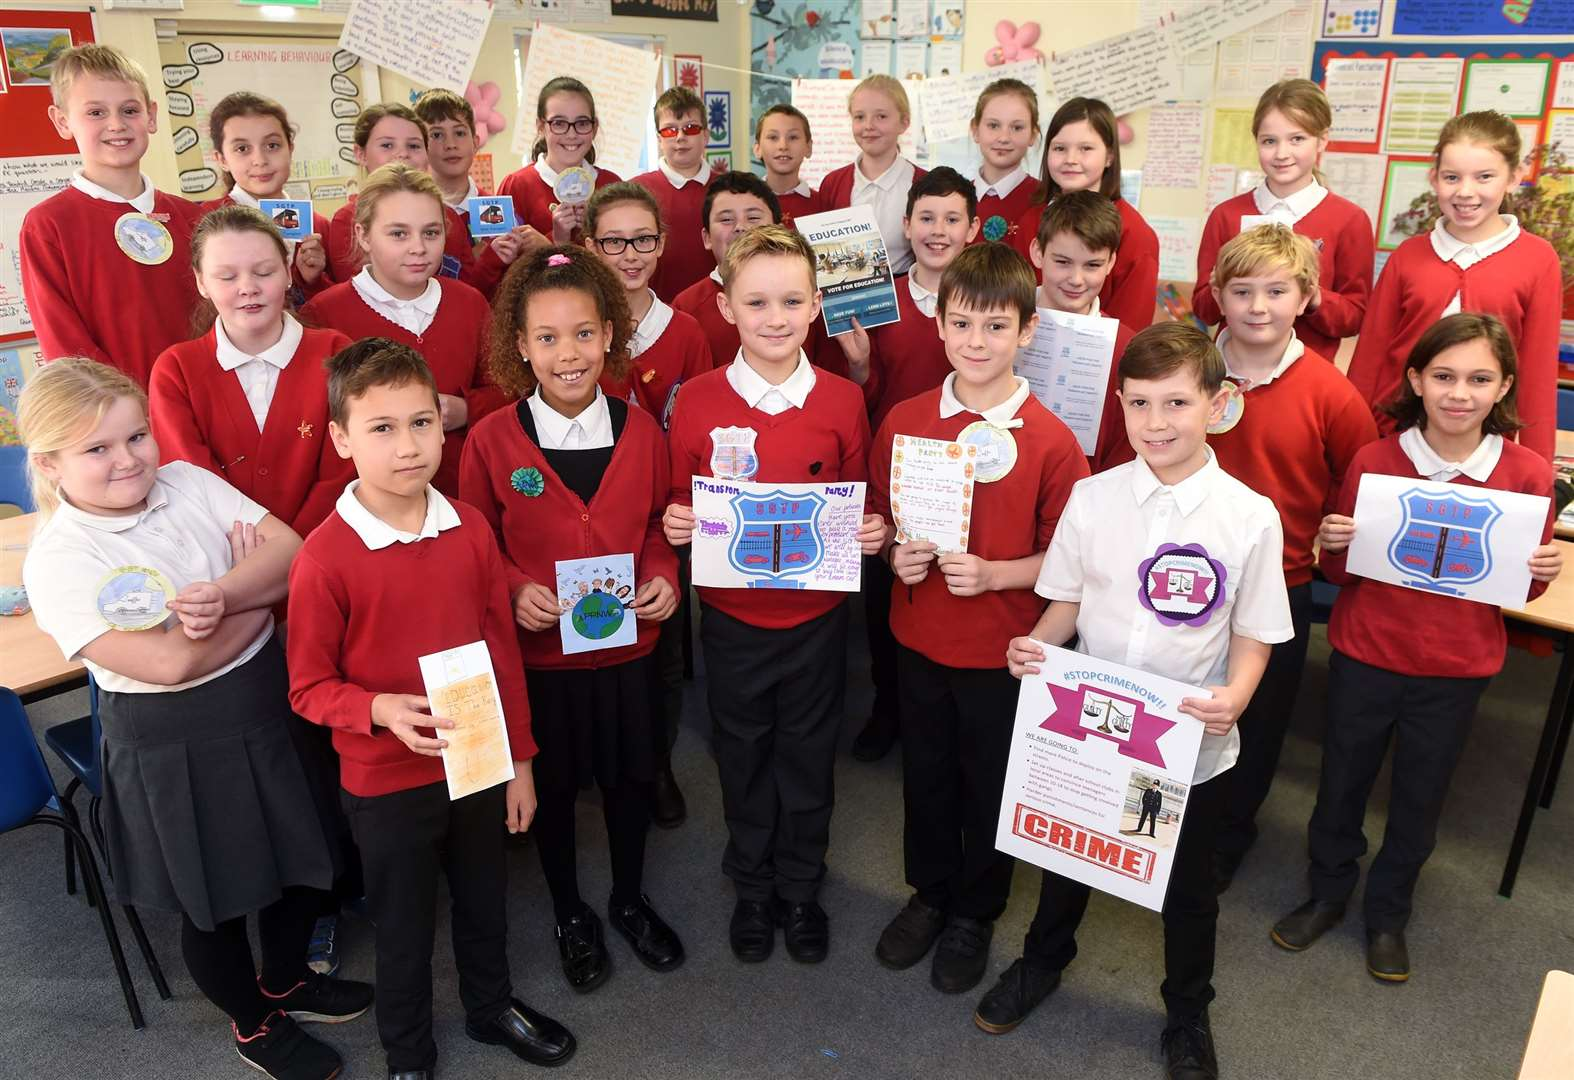 St Gregory Primary School in Sudbury prepares to go to polls for pupil general election